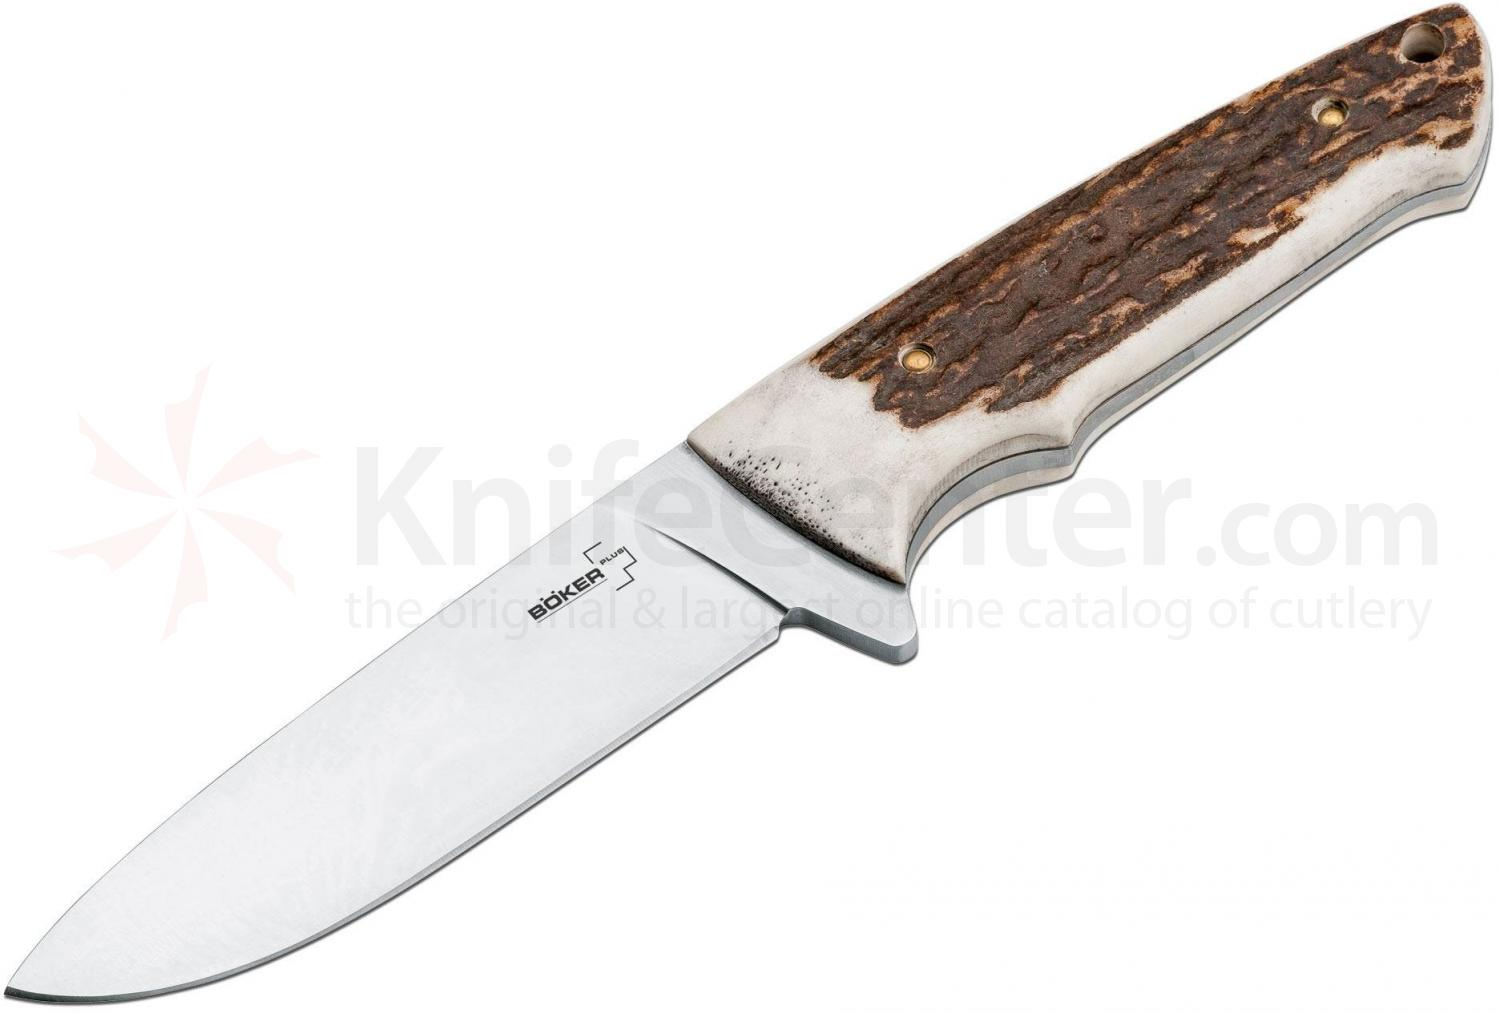 Boker Plus Stag Drop Point Fixed 4-1/8 inch Blade, Stag Handles (02BO319)